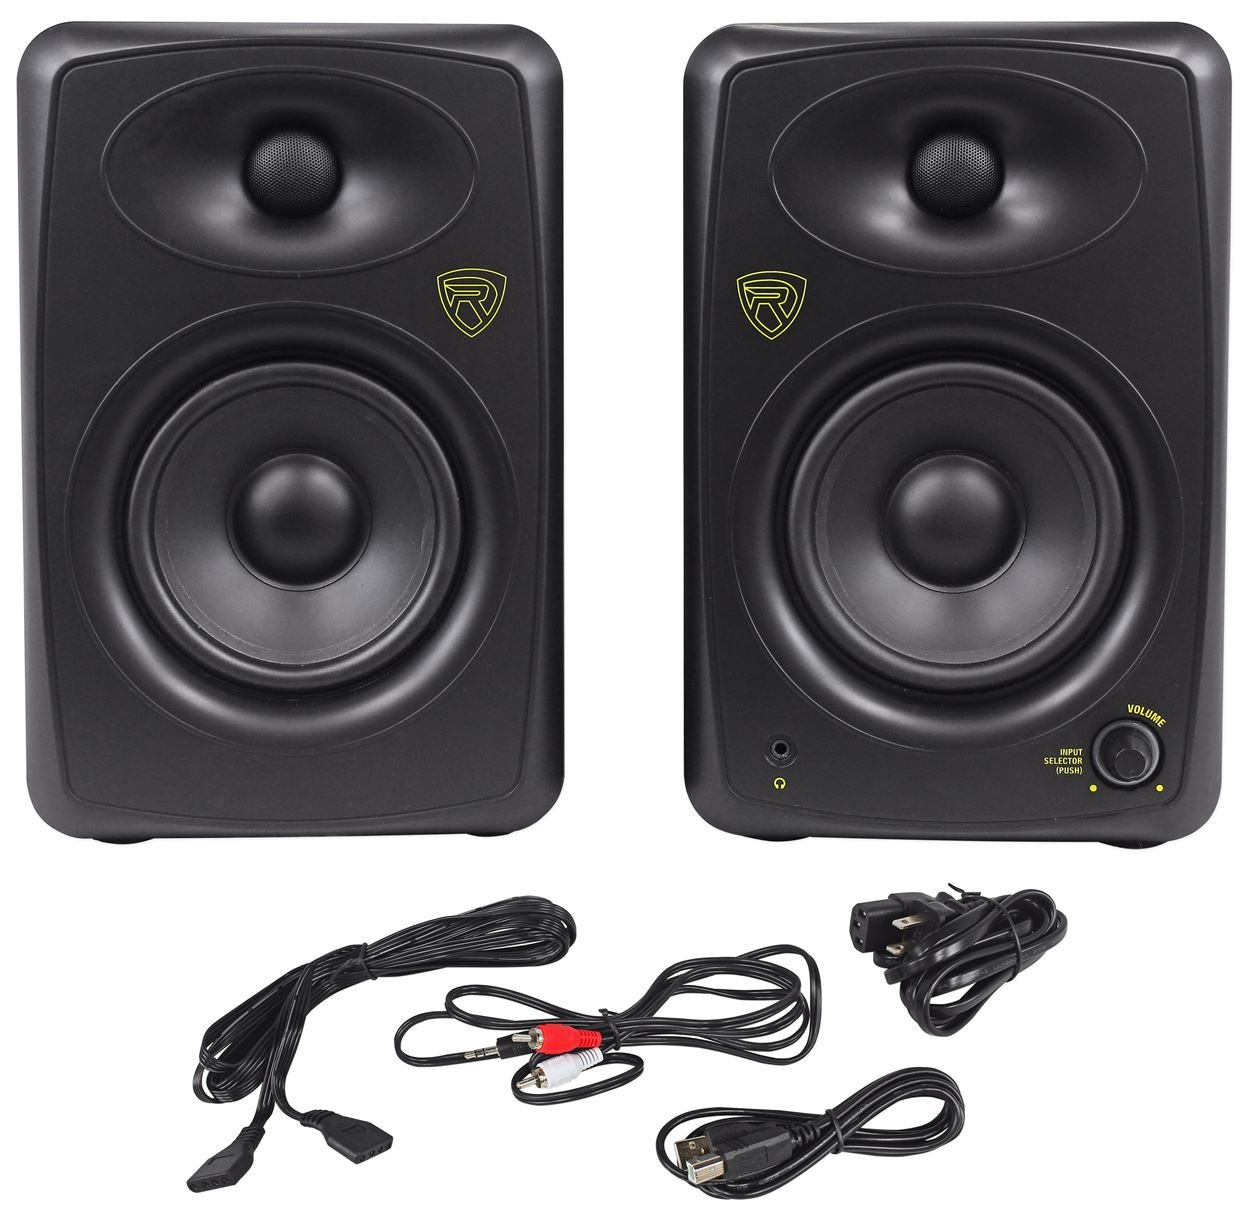 Rockville ASM5 5-Inch 2-Way 200W Active/Powered USB Studio Monitor Speakers Pair Audiosavings